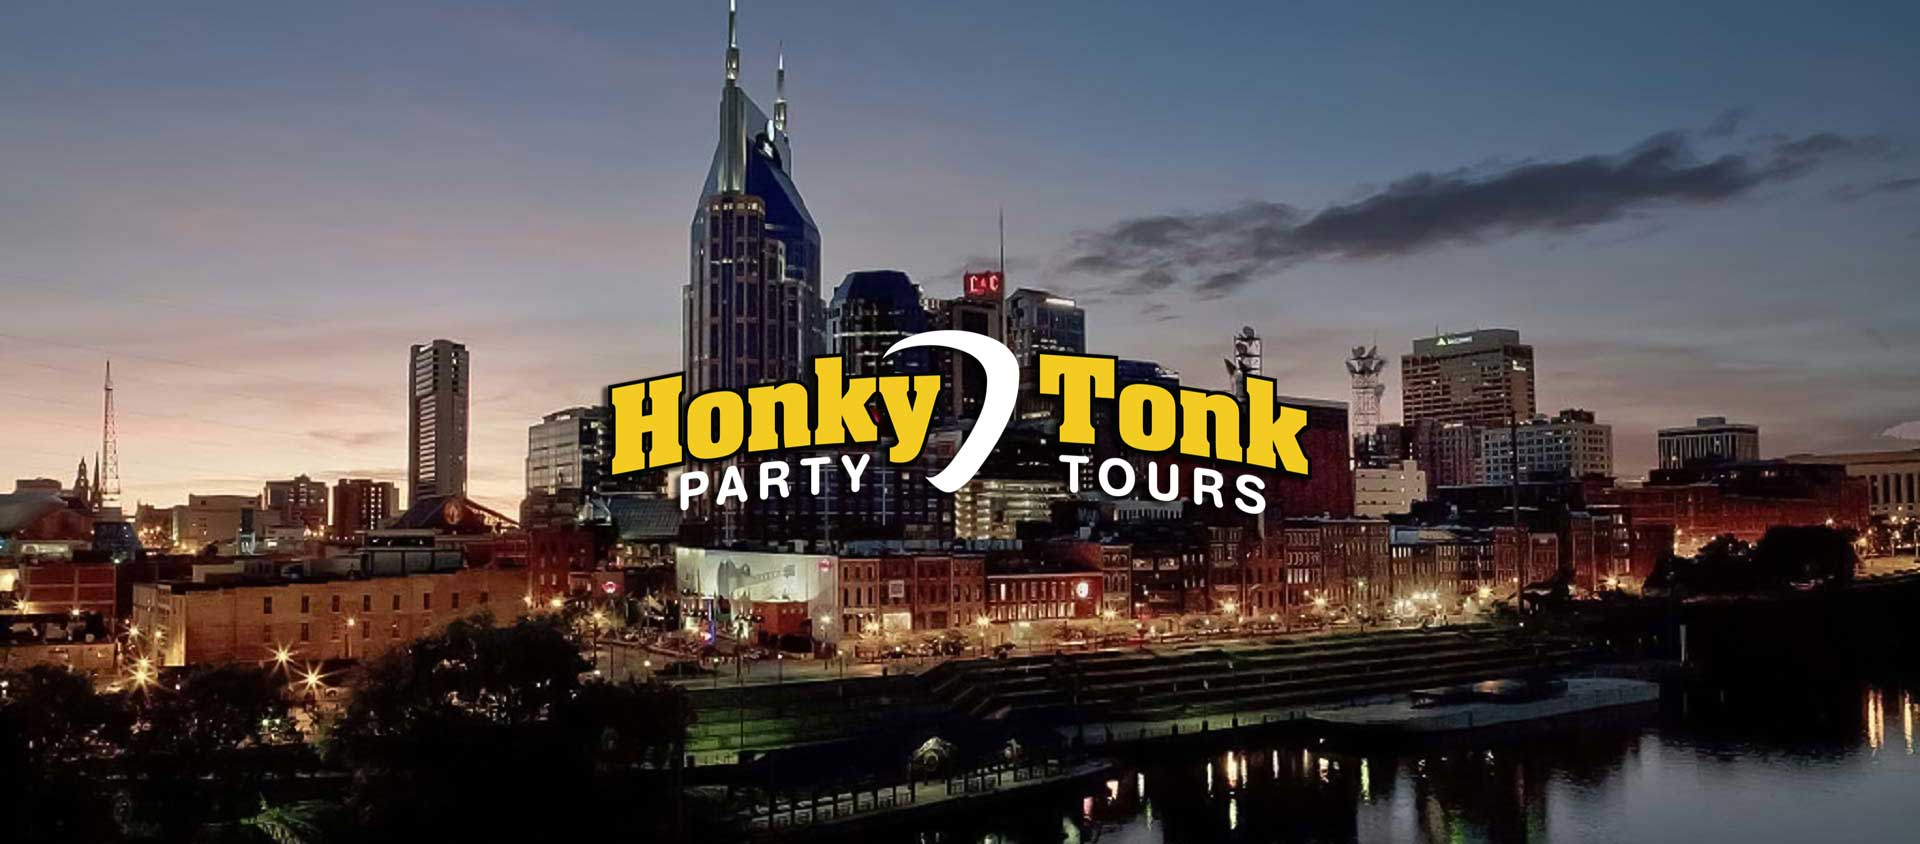 honky-tonk-party-tours-homepage-hero